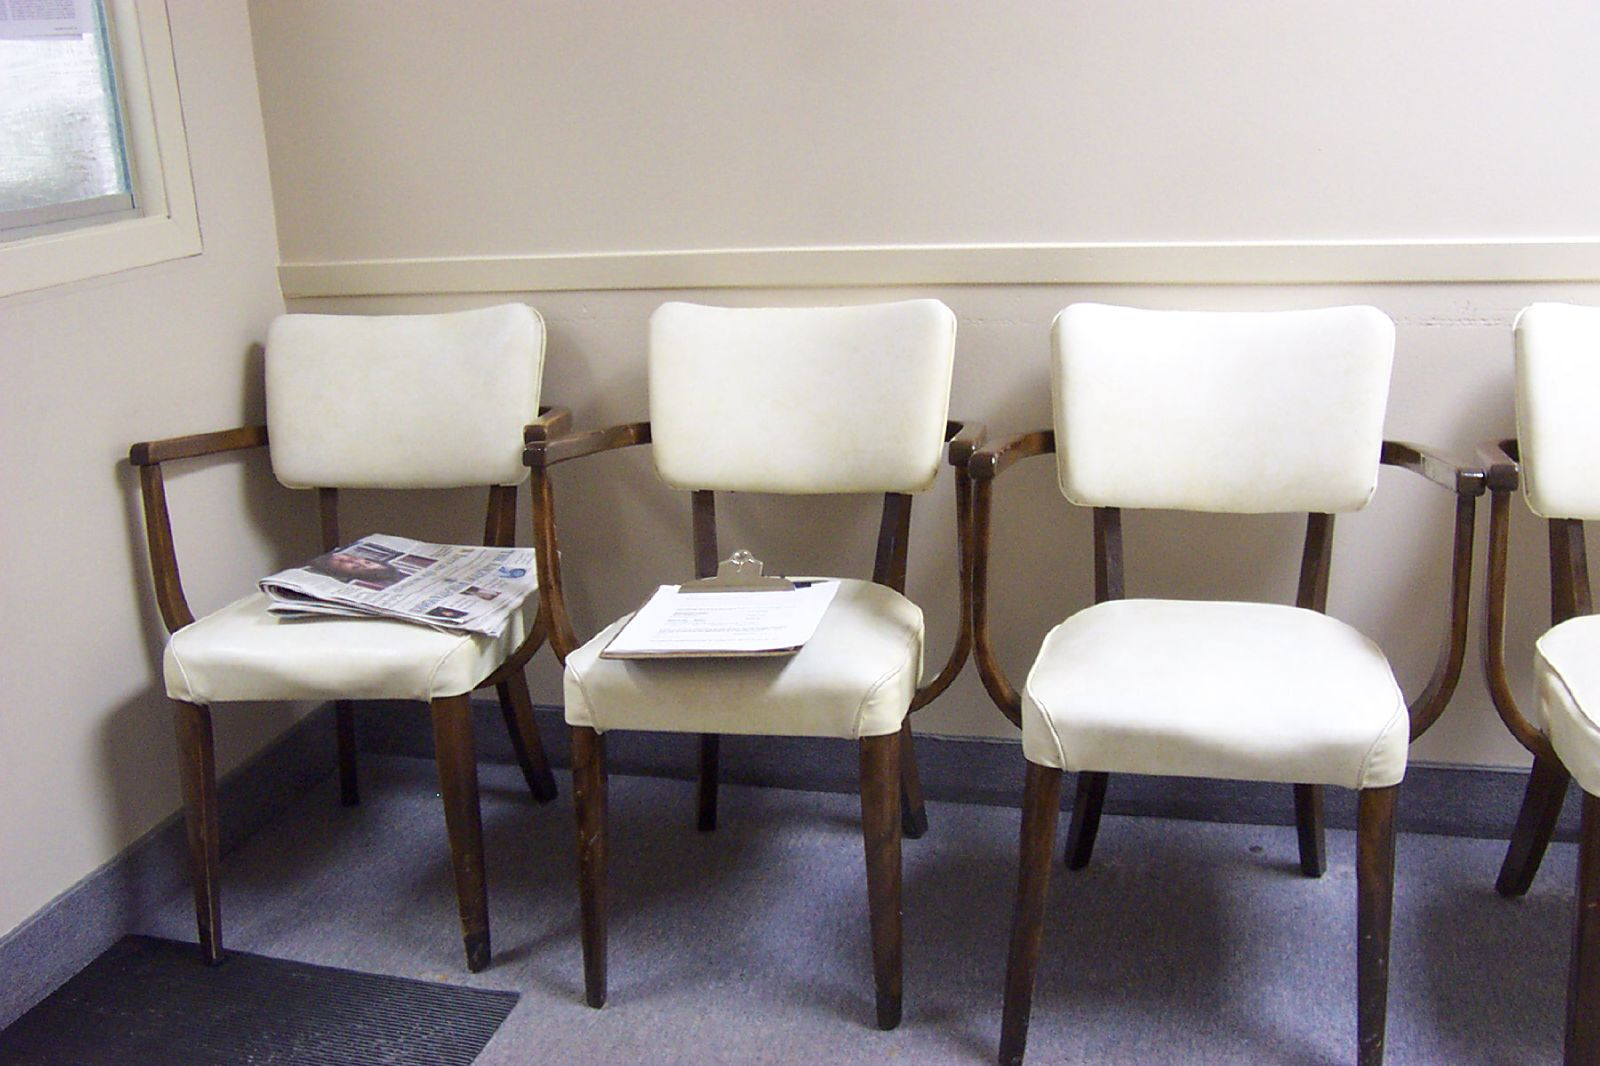 Waiting Rooms I Have Known